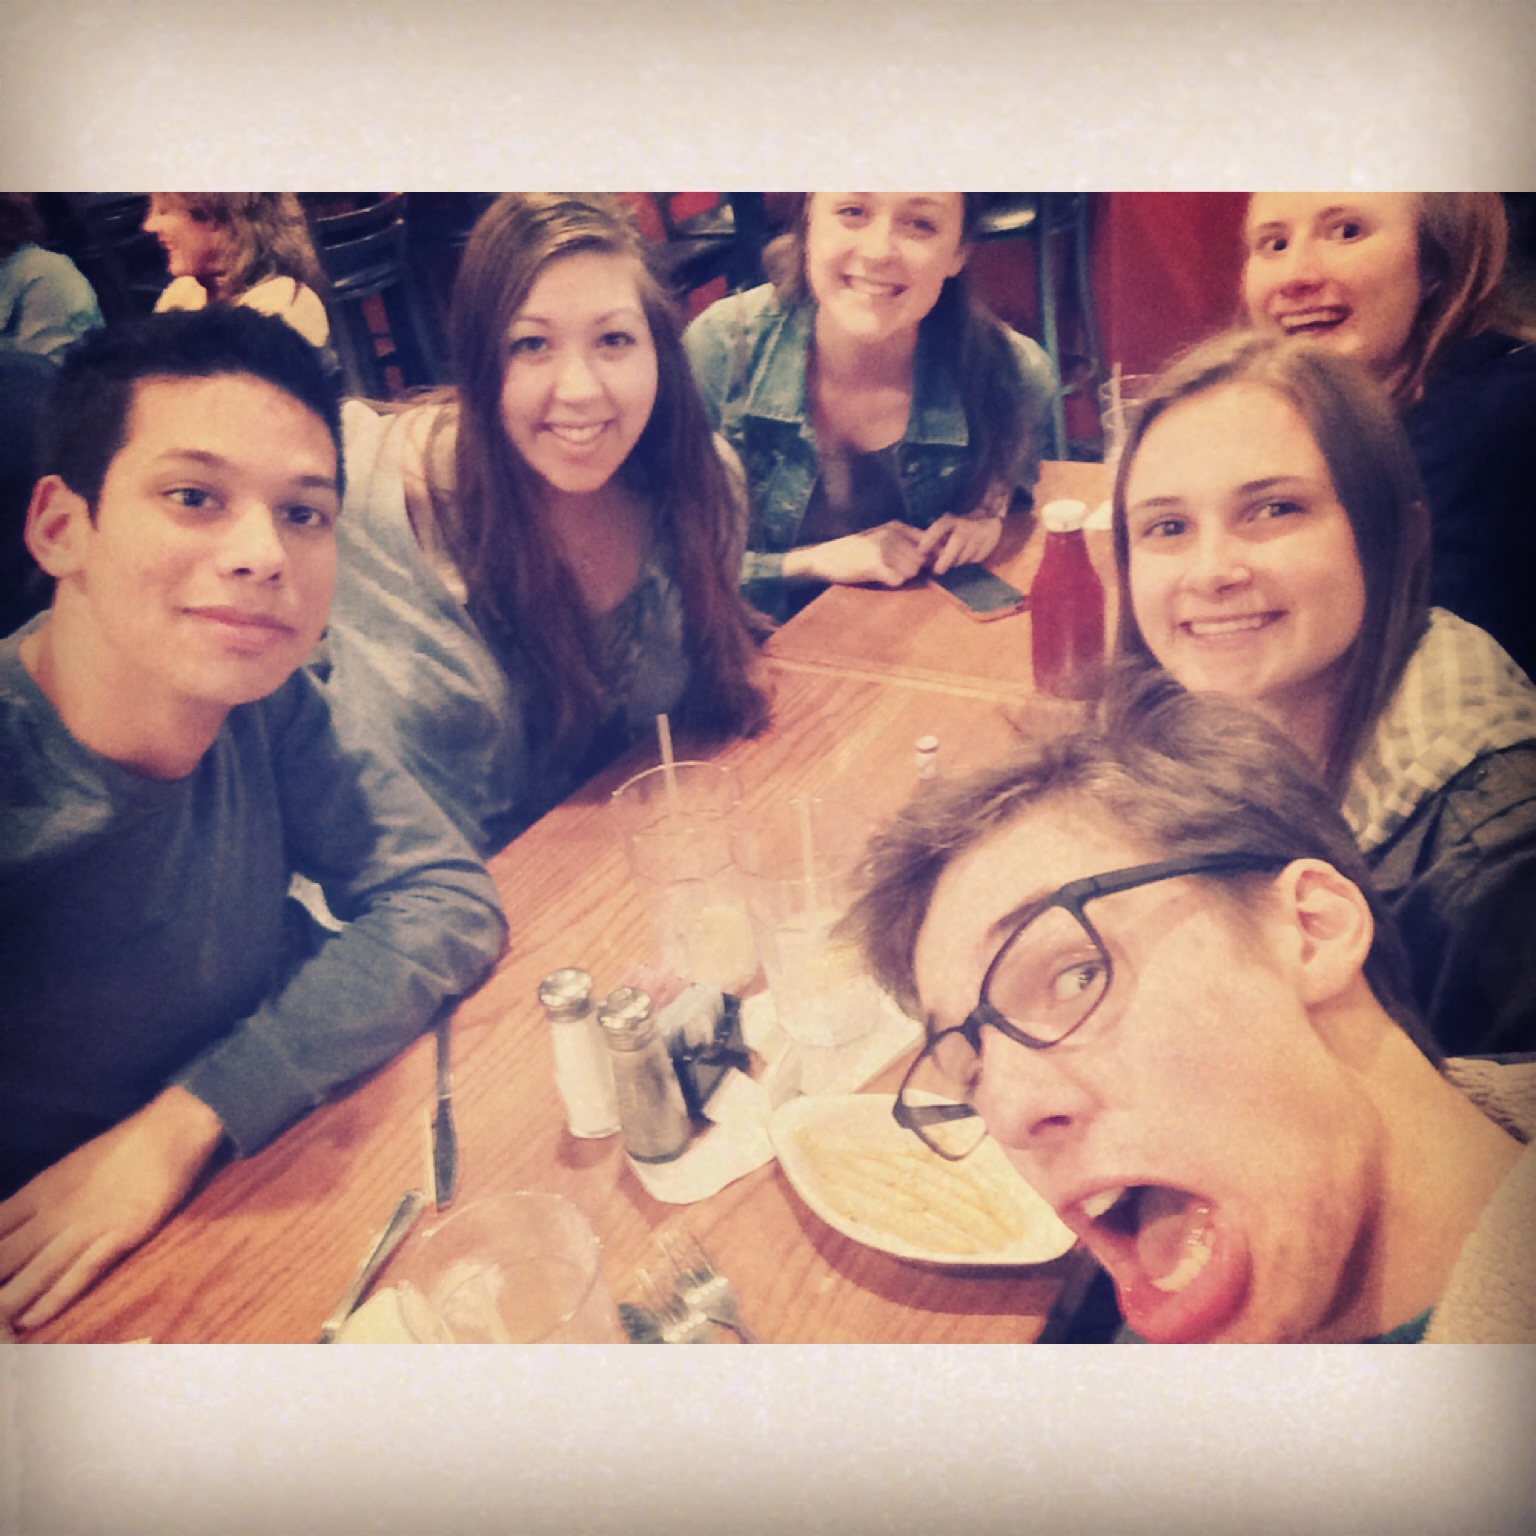 Six happy students in a selfie at a dinner table